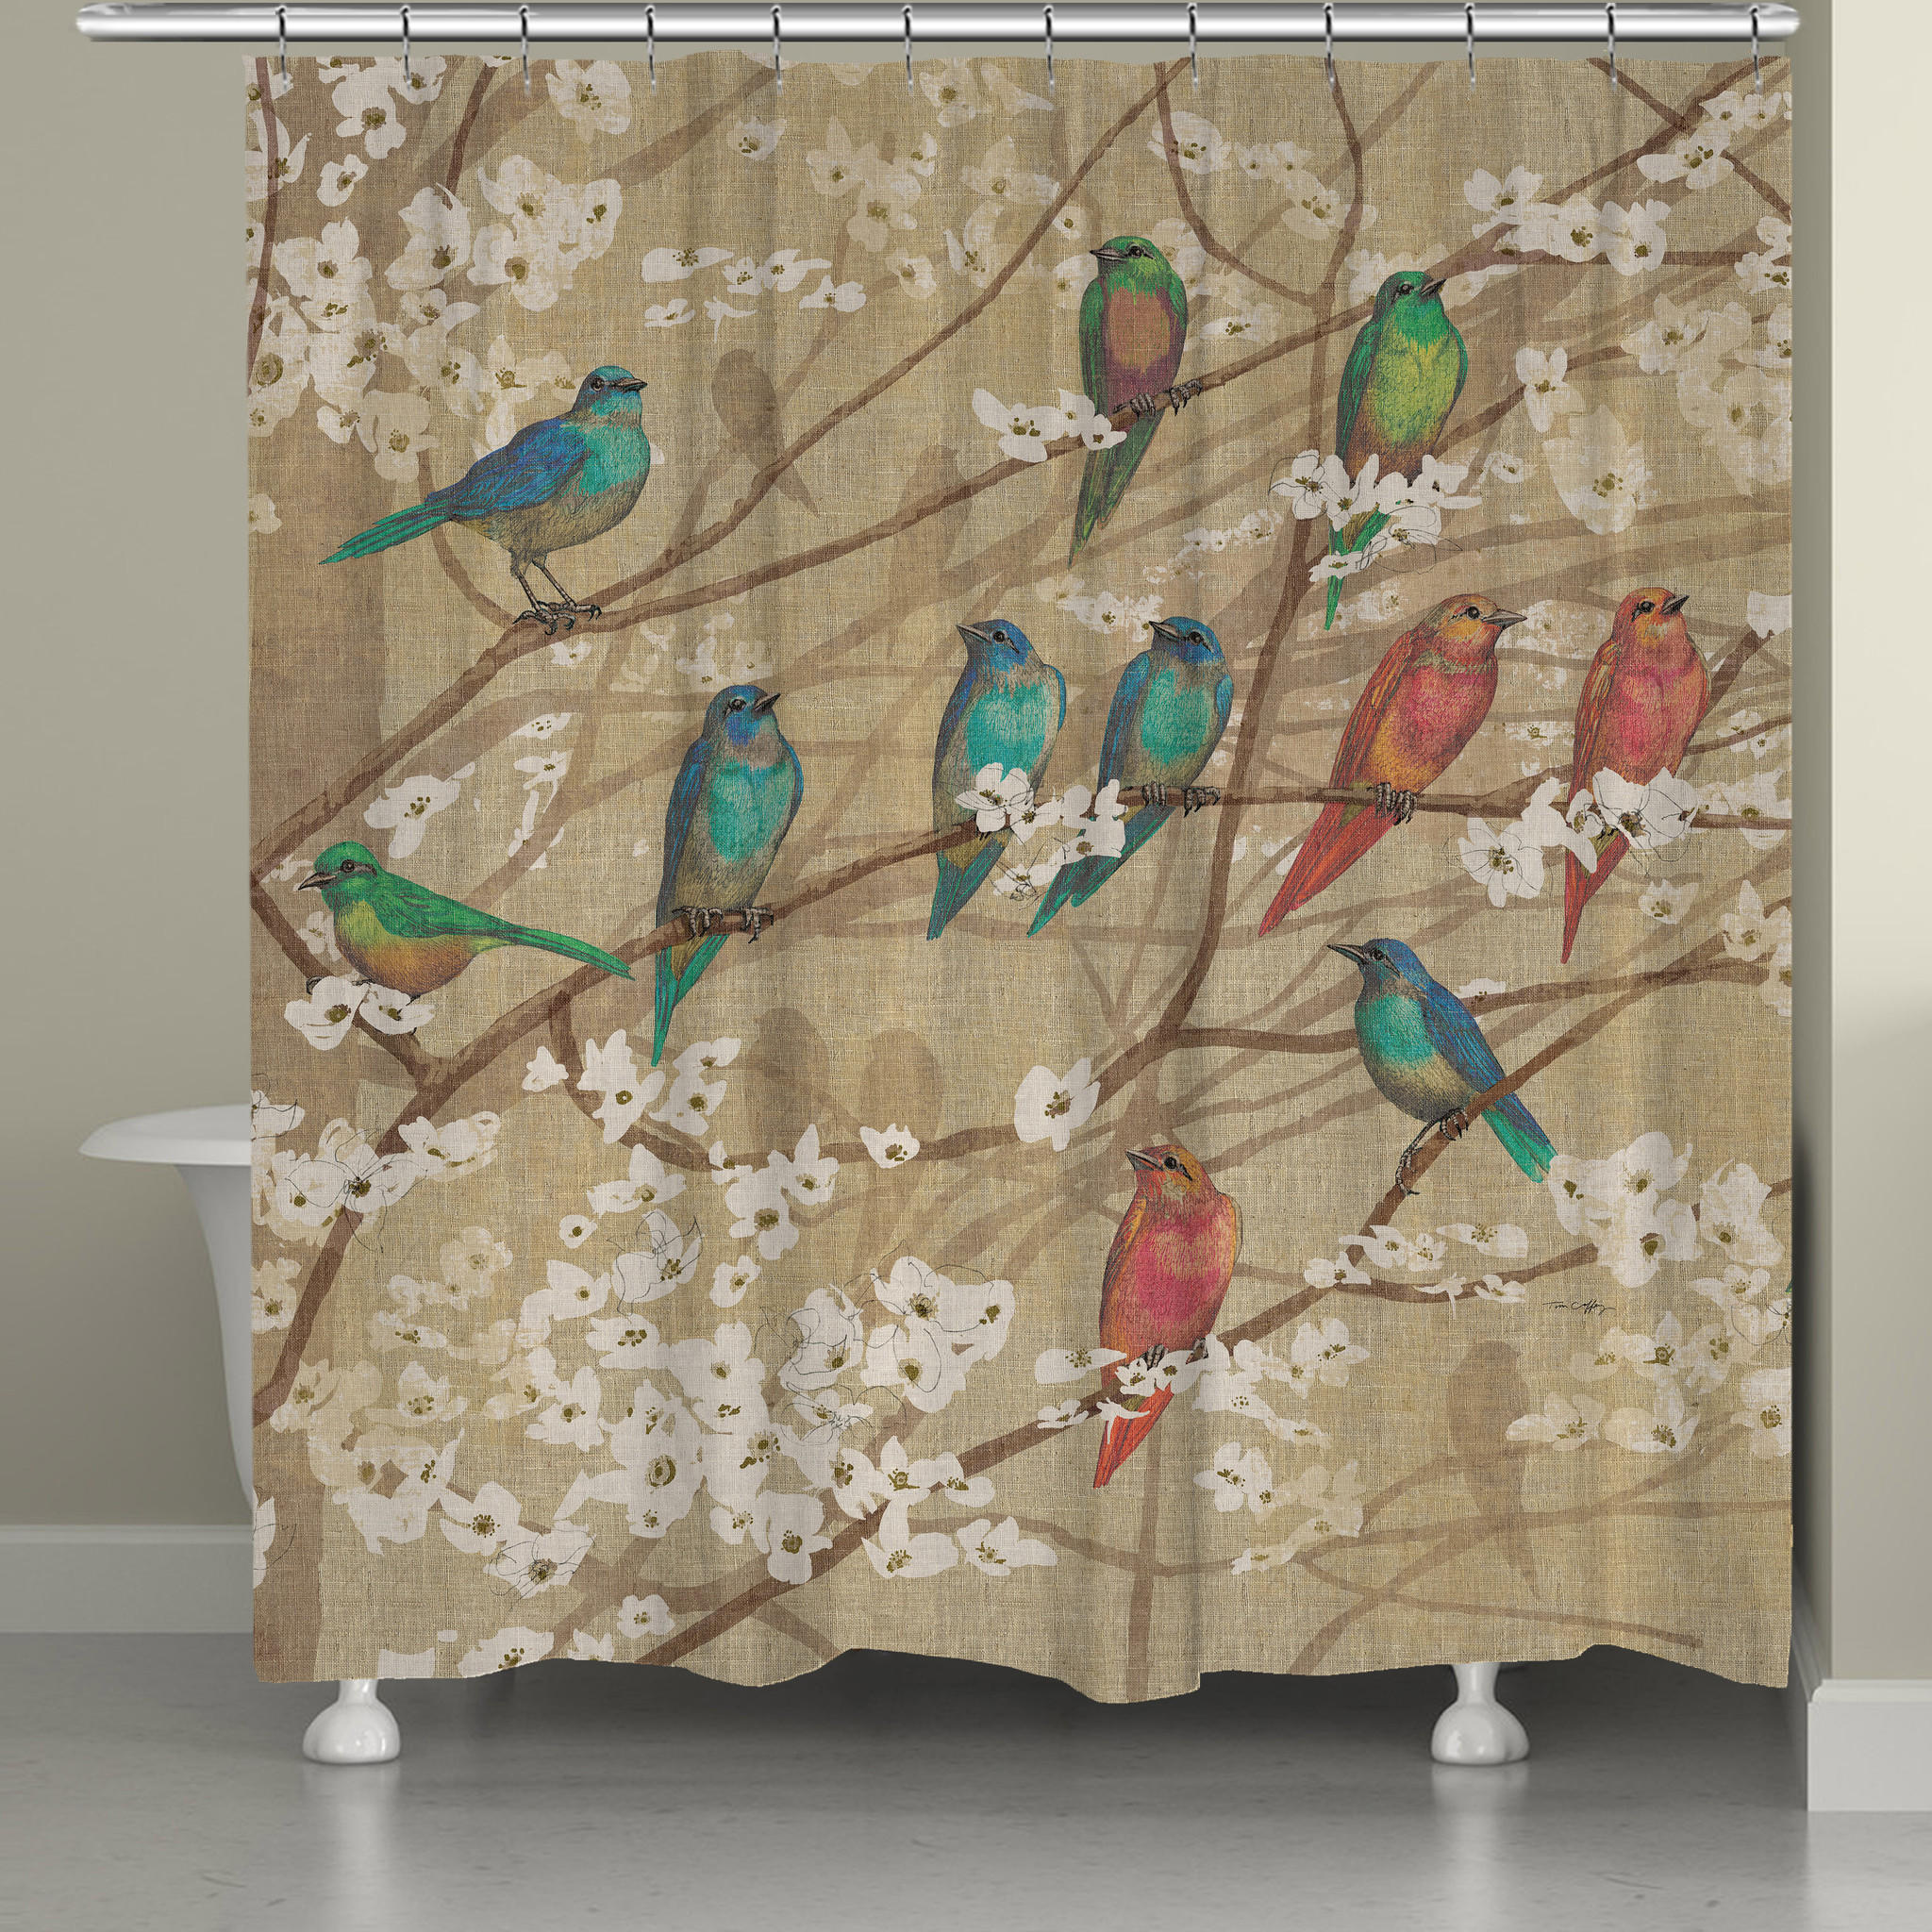 Birds And Blossoms Shower Curtain From Laural Home S H O W E R